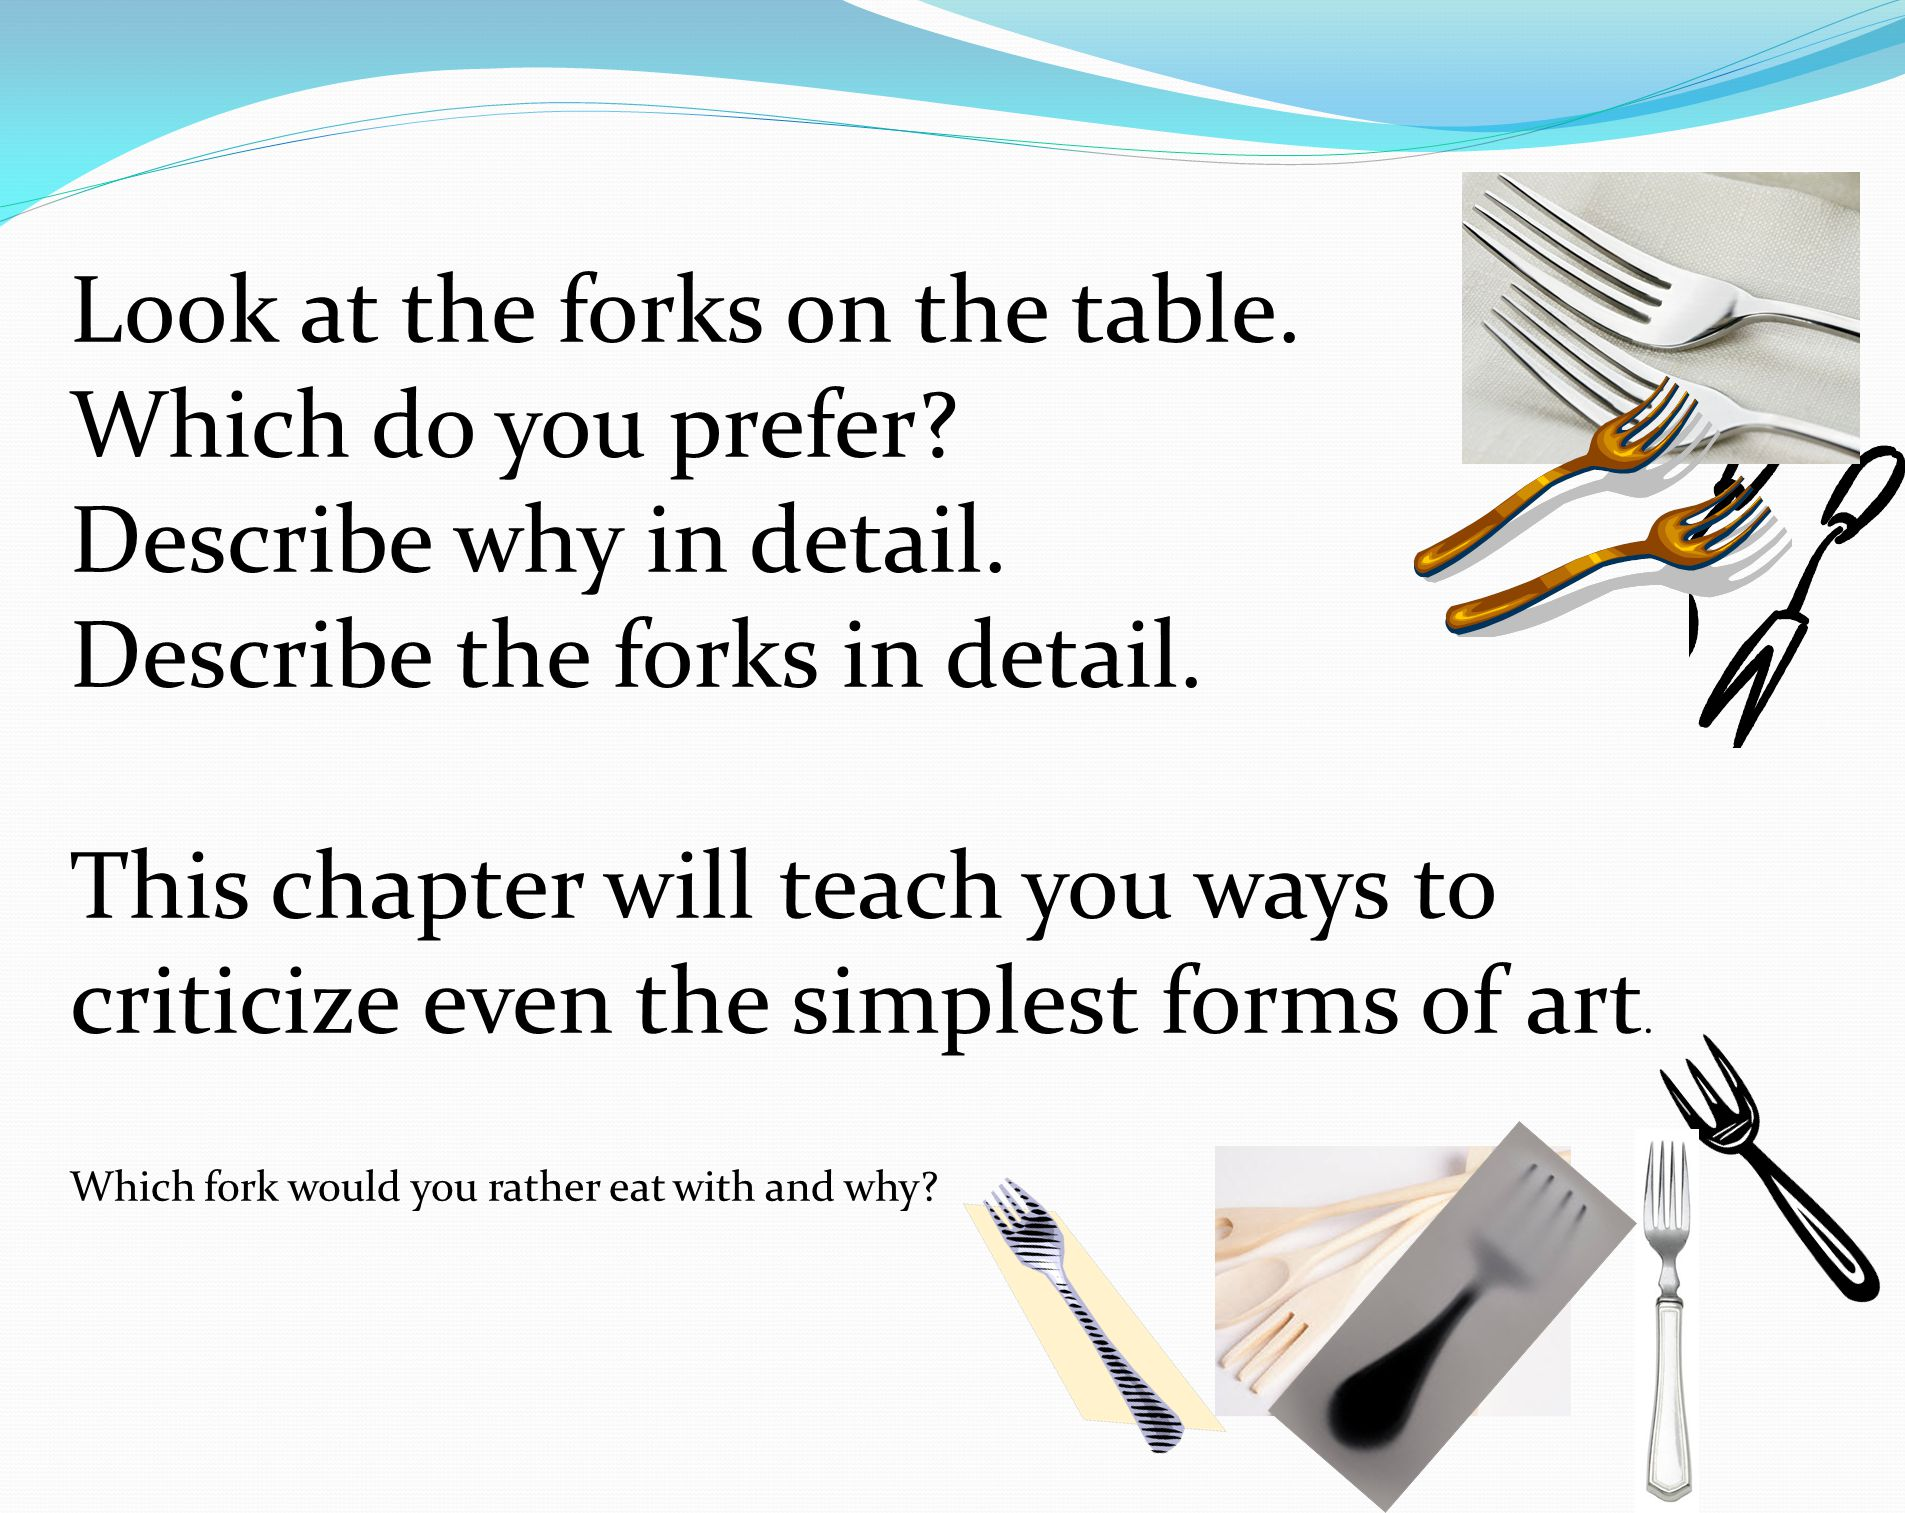 Look at the forks on the table. Which do you prefer